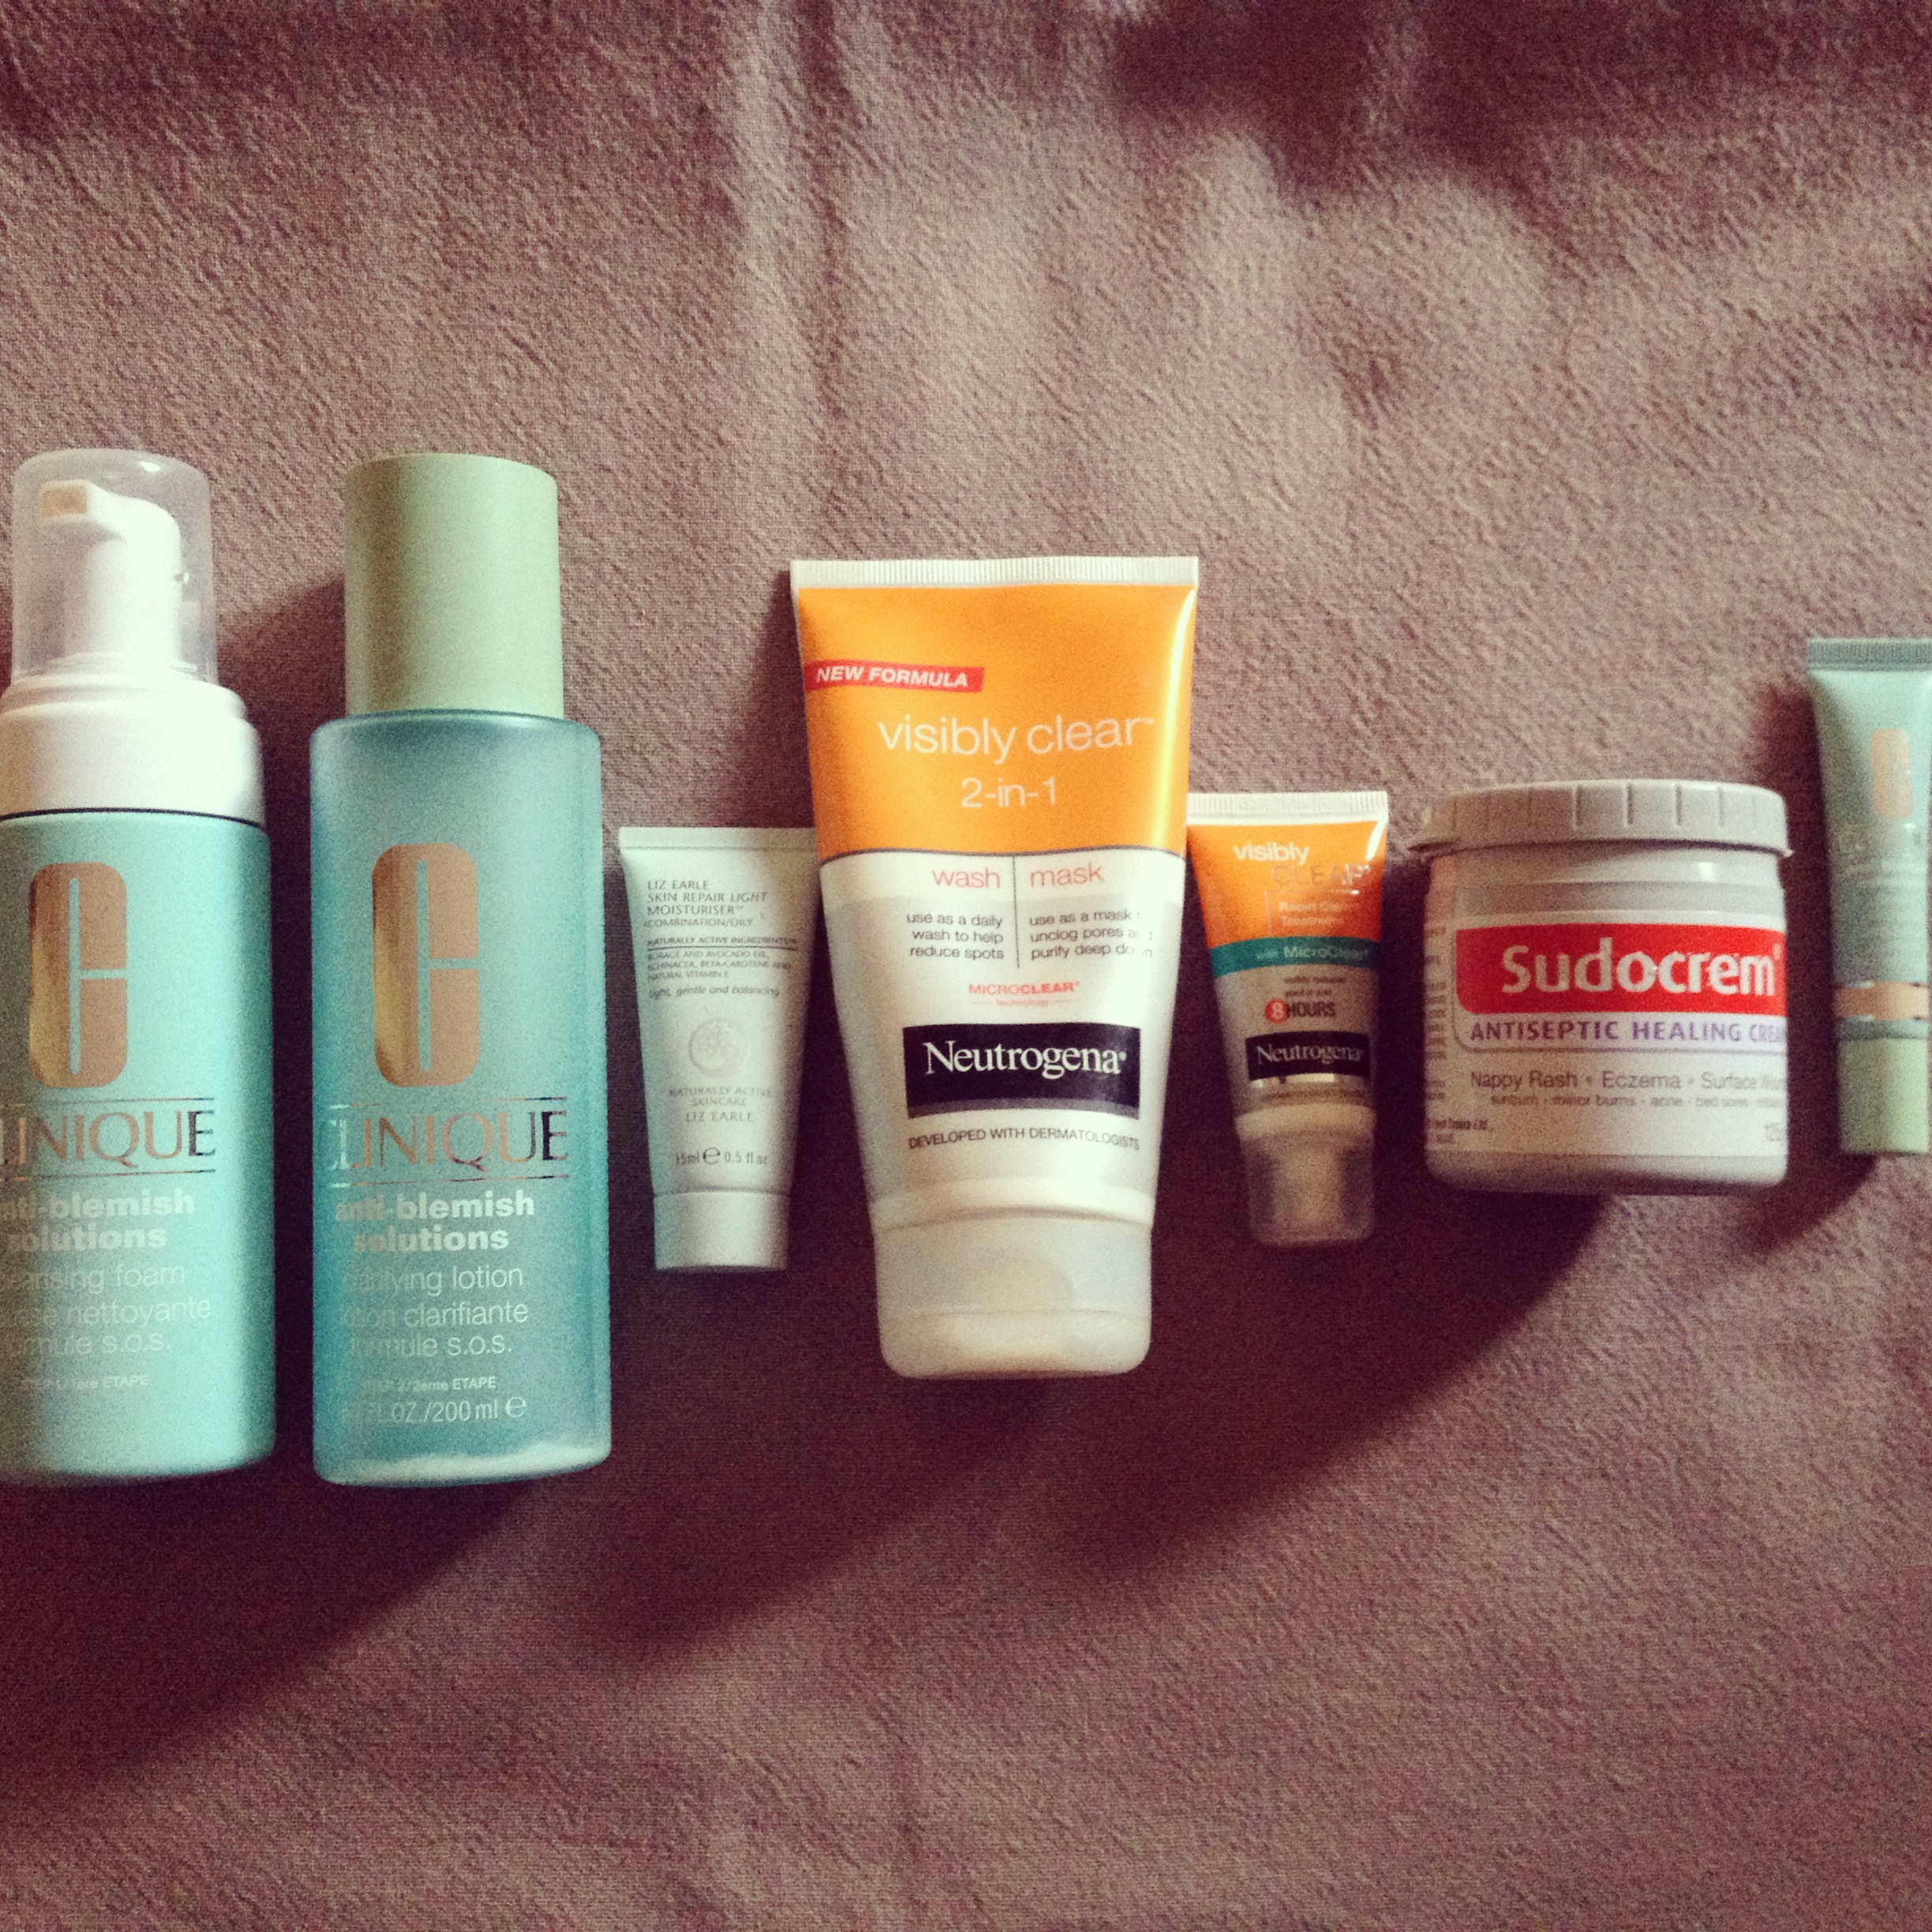 Products for Spot Prone skin